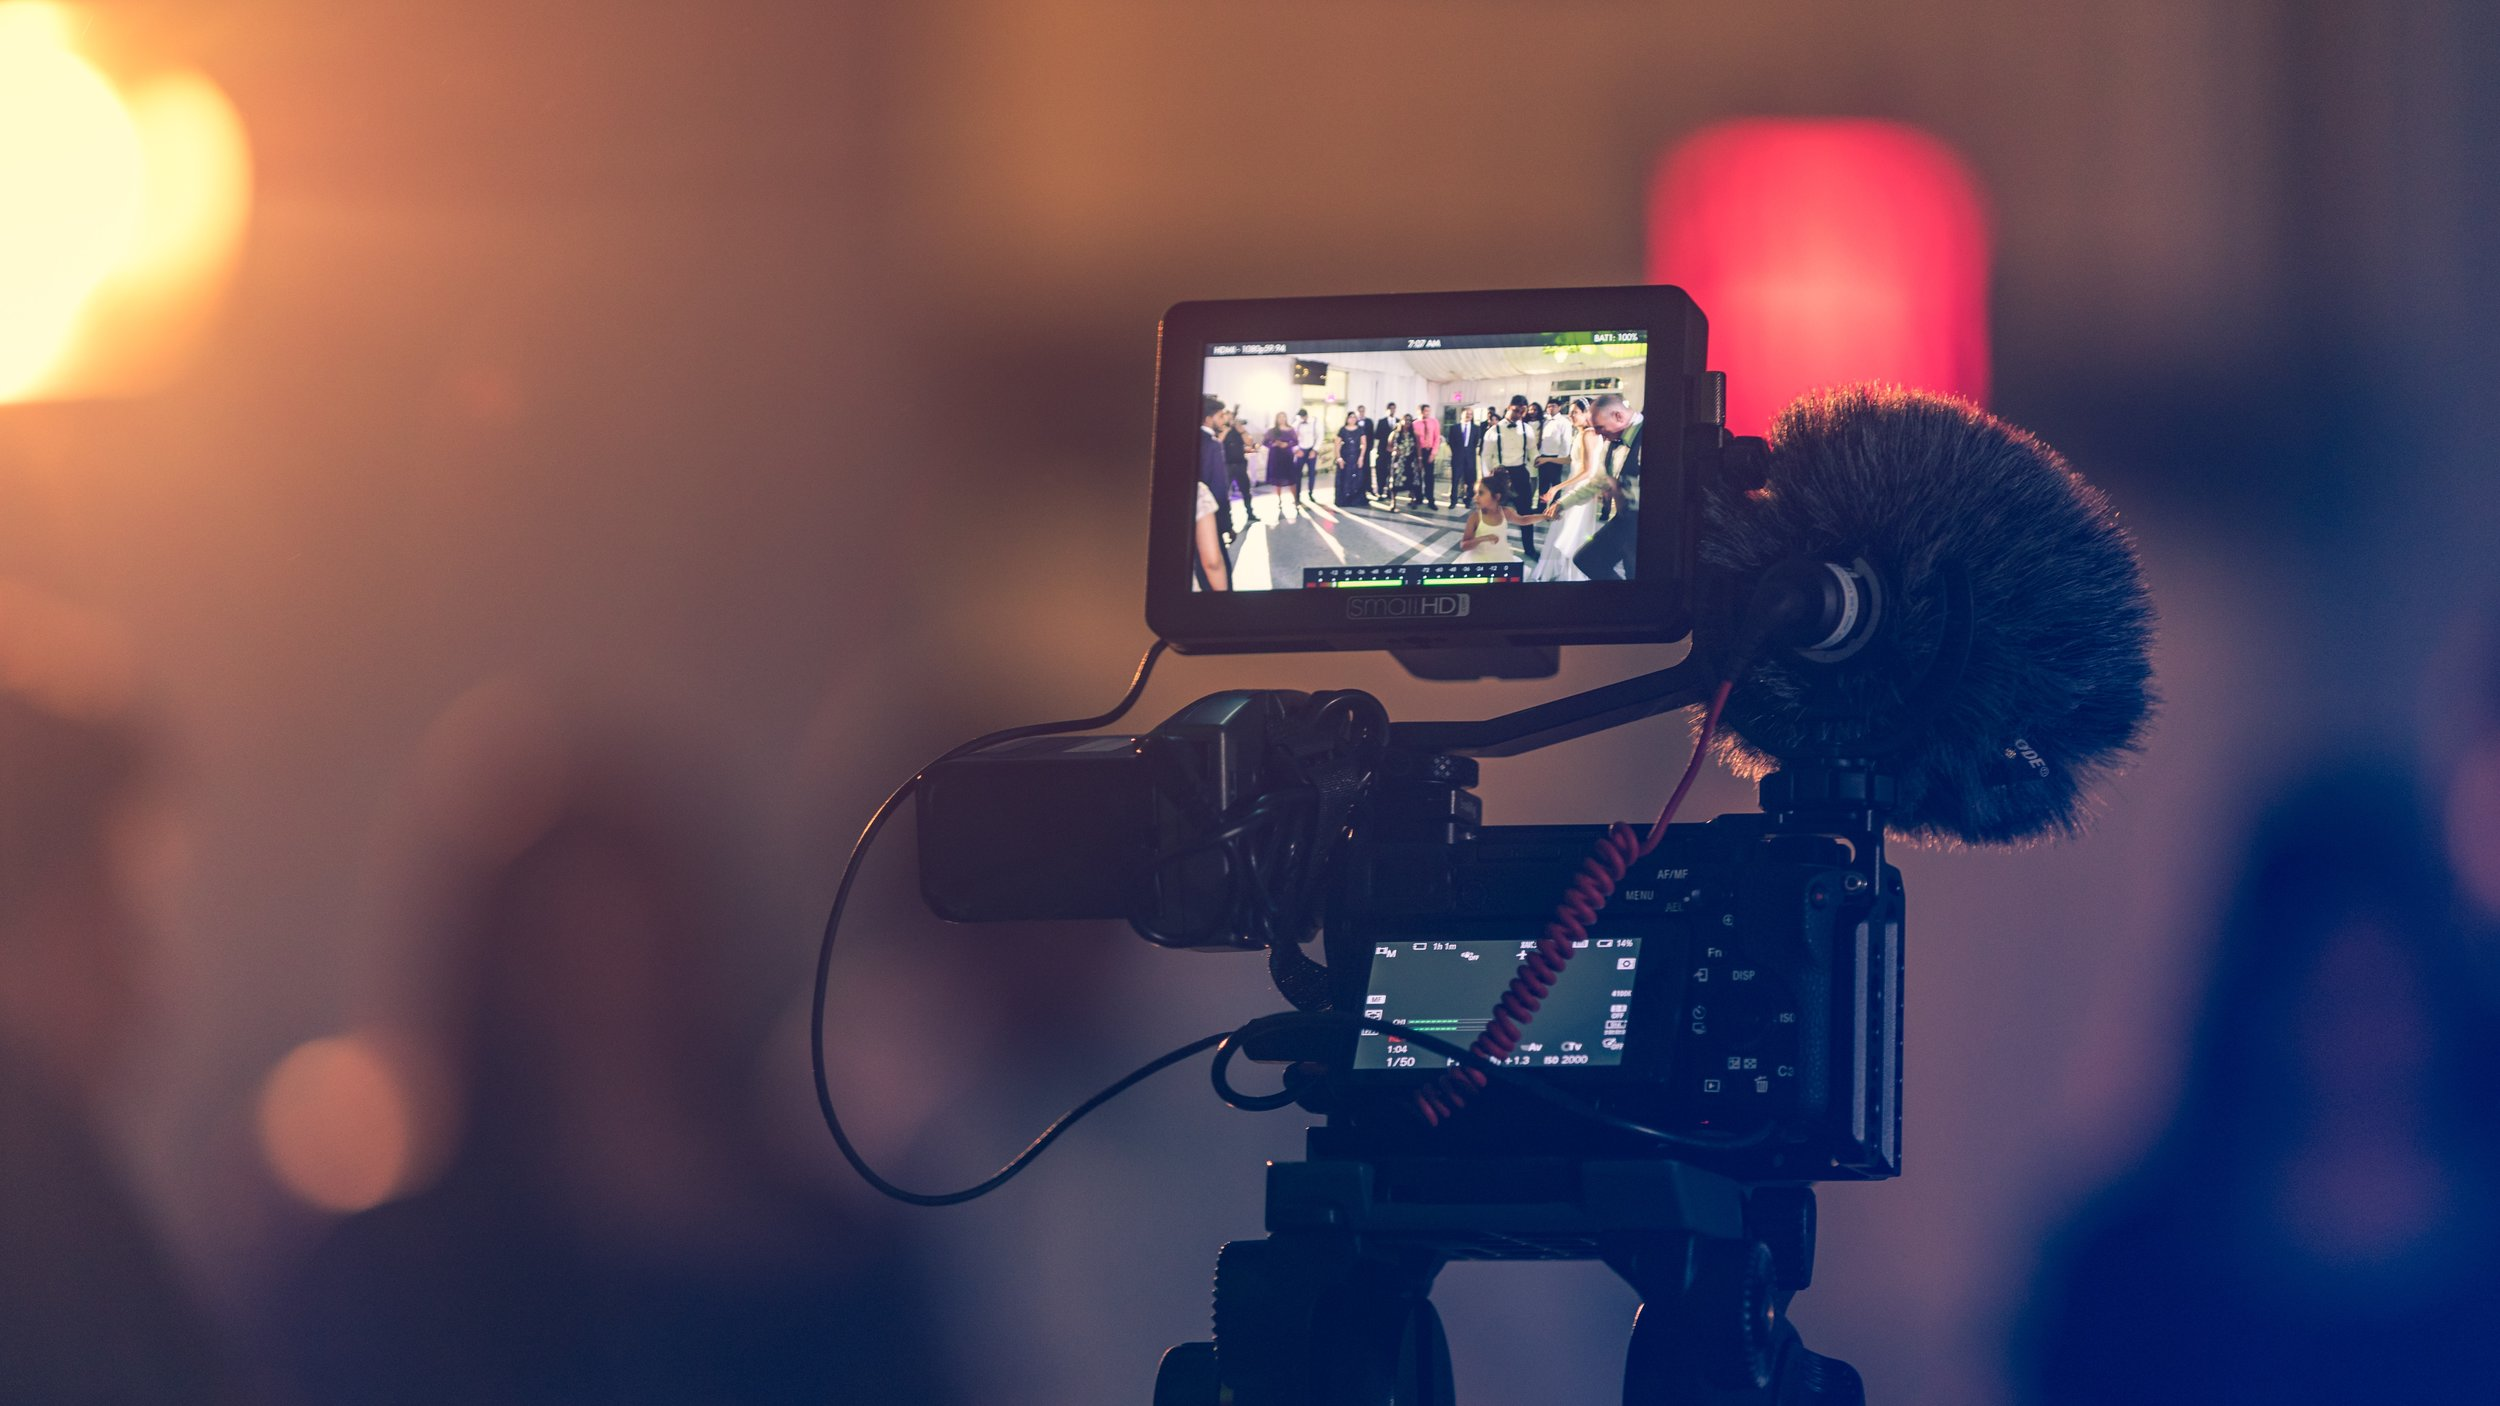 Rental Services - Rent your contribution equipment & CDN for a day, a week or a year.Read more about our LiveU solutions HERE